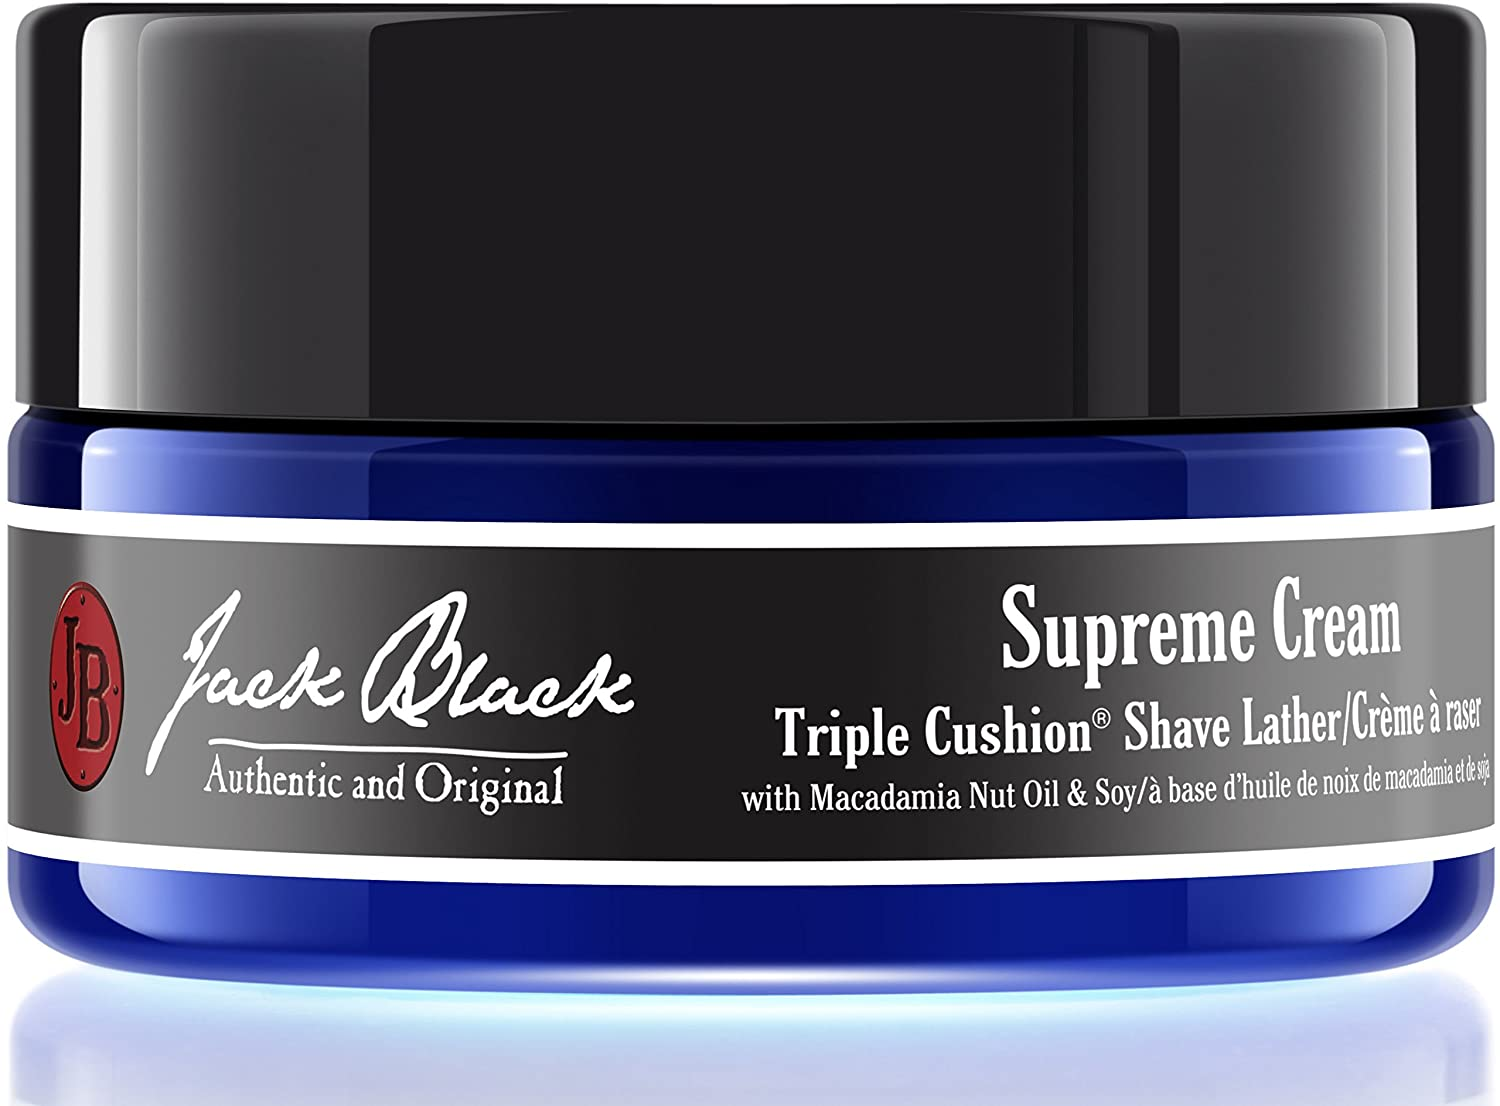 Jack Black Supreme Cream Triple Cushion Shave Lather 236 ml 91009